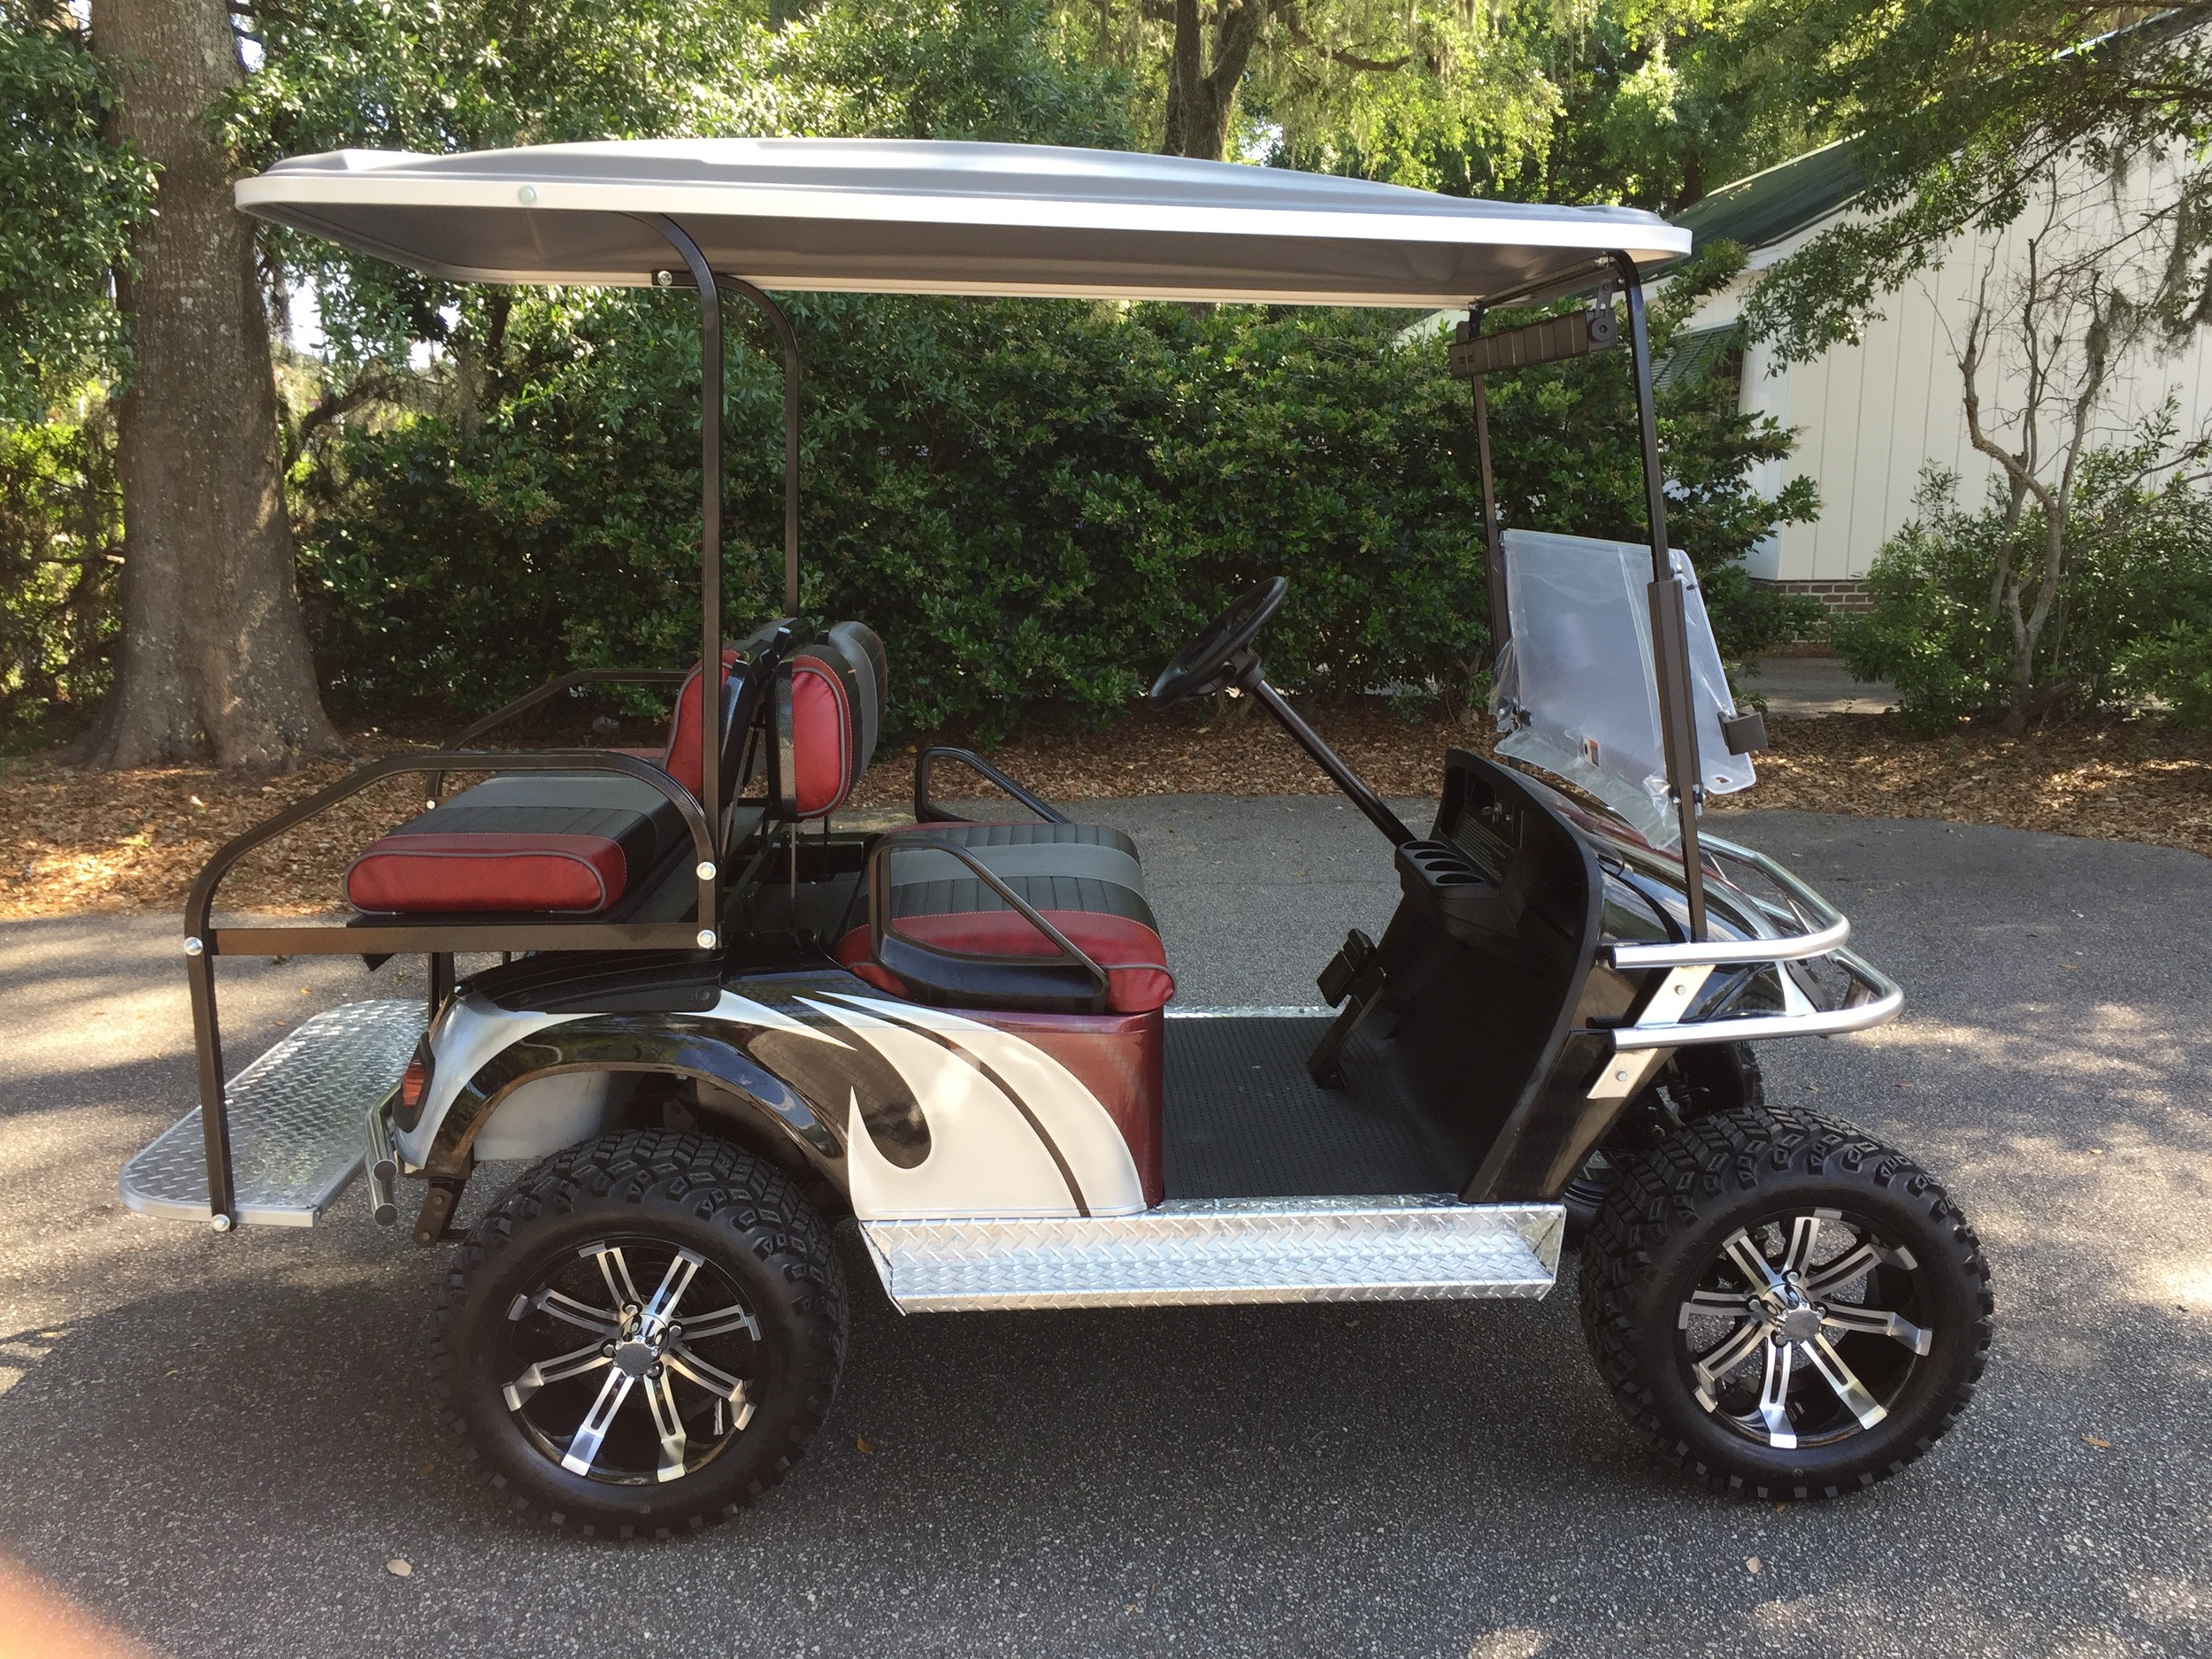 Burgundy Swirl EZGO Lifted Cart  Burgundy/black/smoke seats, black extended top, new batteries, high speed code, LED lights, Backlash (23x10x14) tires, chrome brush guard, running board, and rear guard, mirror, flip windshield, and state of charge meter